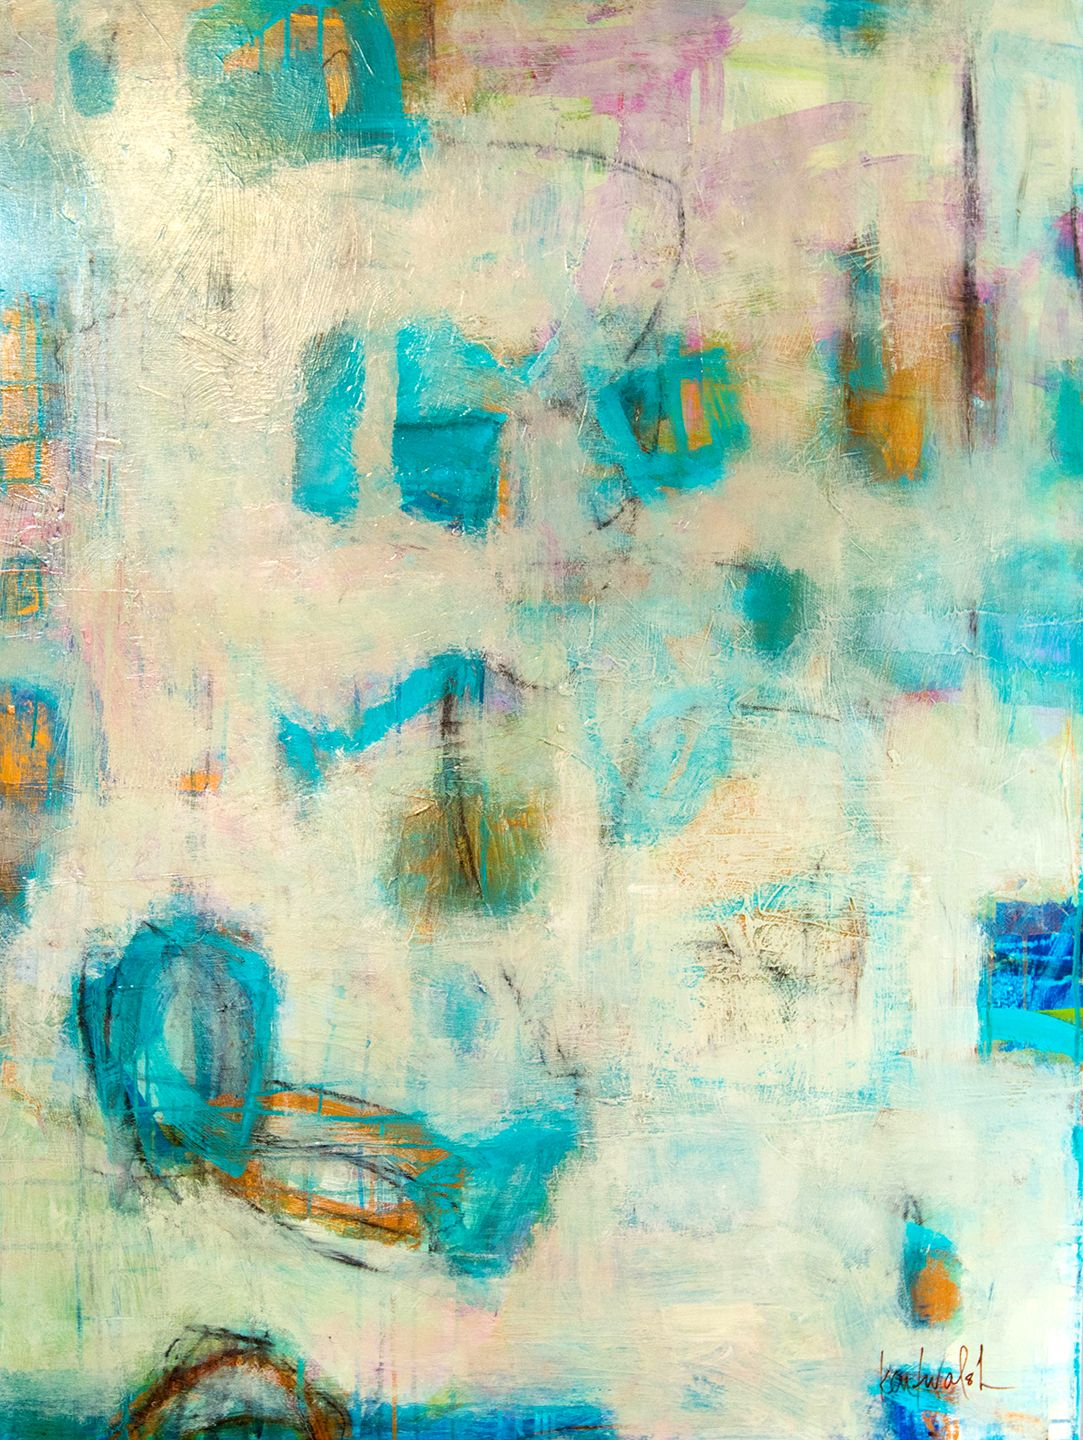 40 Ink Painting Ideas For Inspiration: 3x4 Happy To Be Blue Acrylic, Ink, Charcoal On Canvas